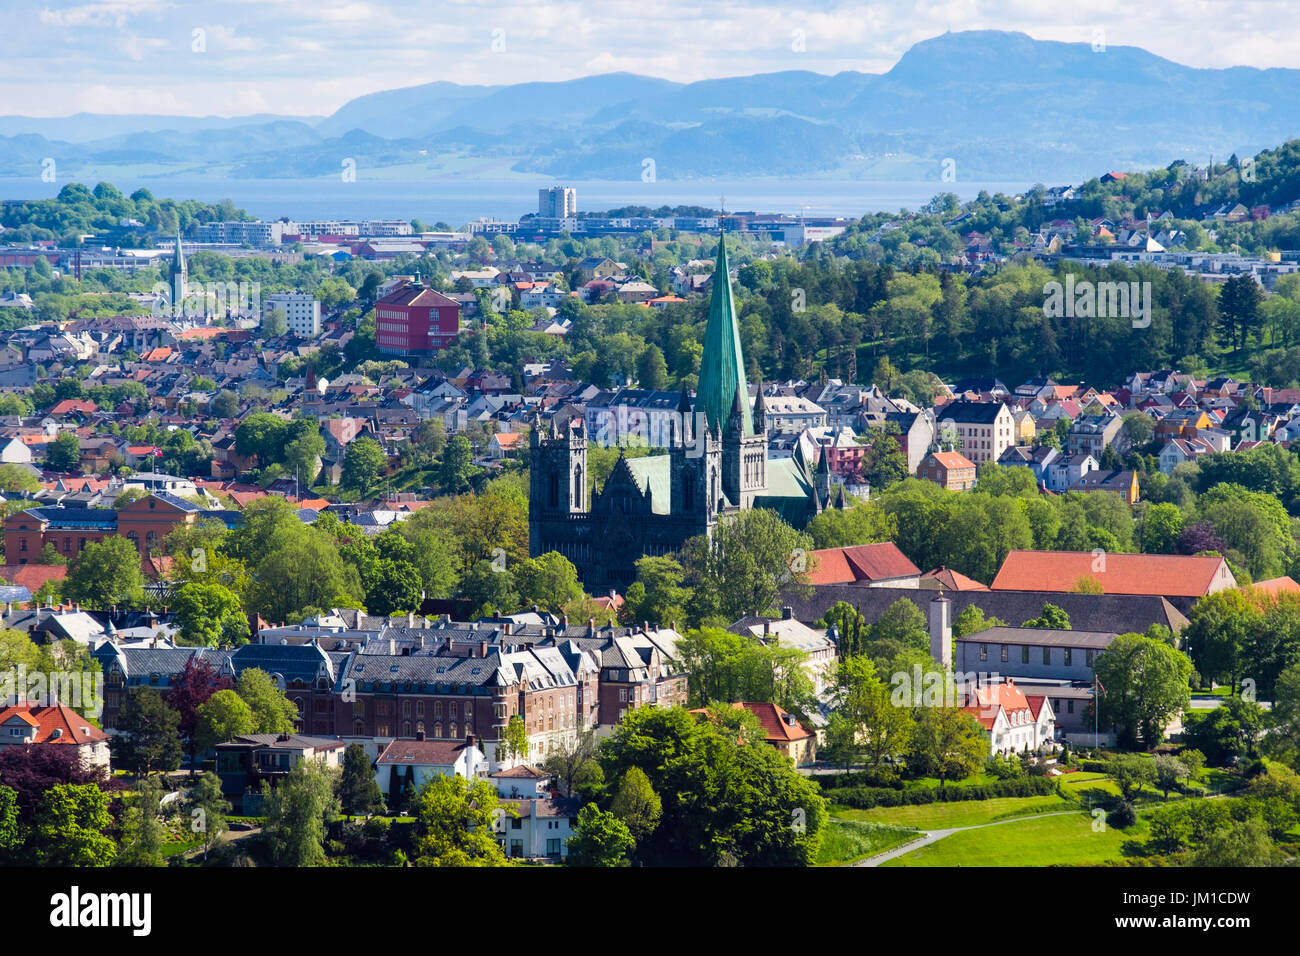 View overlooking the old town with Nidaros Cathedral in summer. Trondheim, Sør-Trøndelag, Norway, Scandinavia - Stock Image